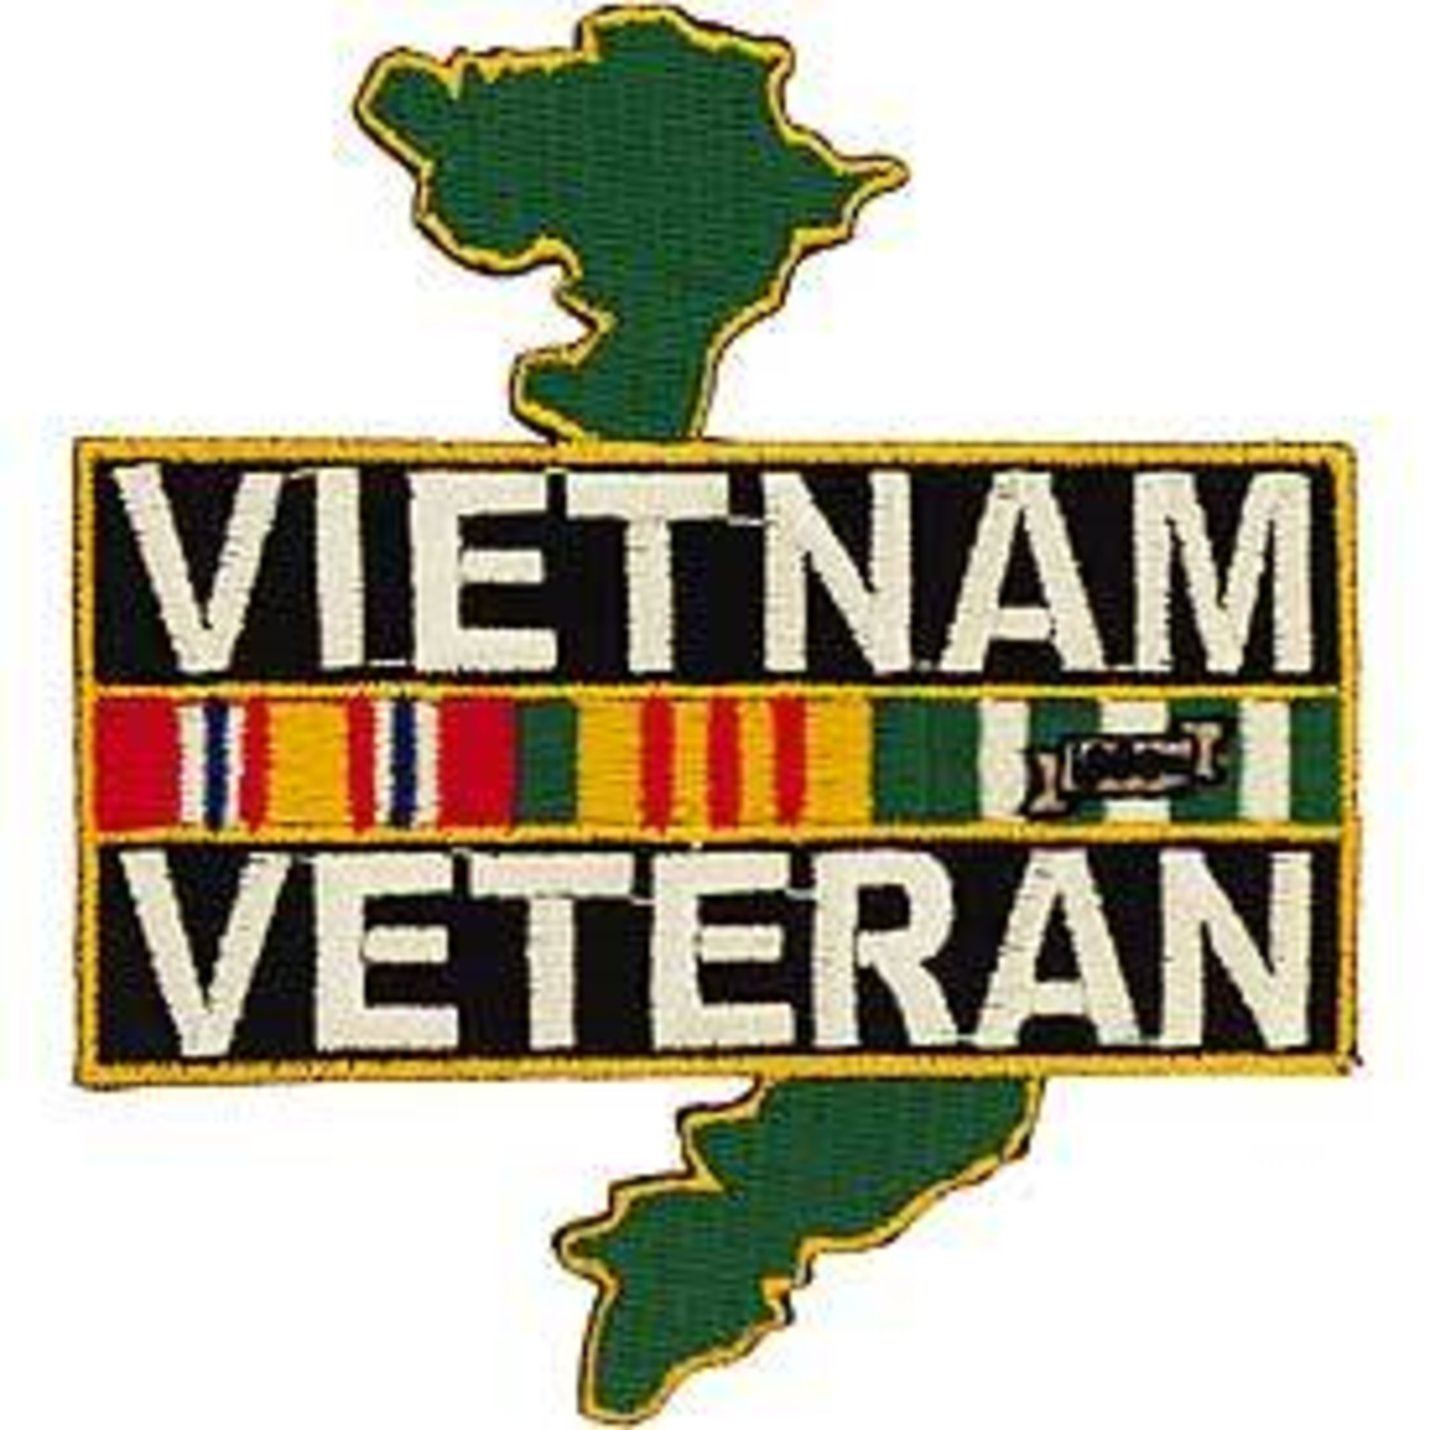 USARV Vietnam Veteran Patch |Vietnam Veteran Patches And Badges